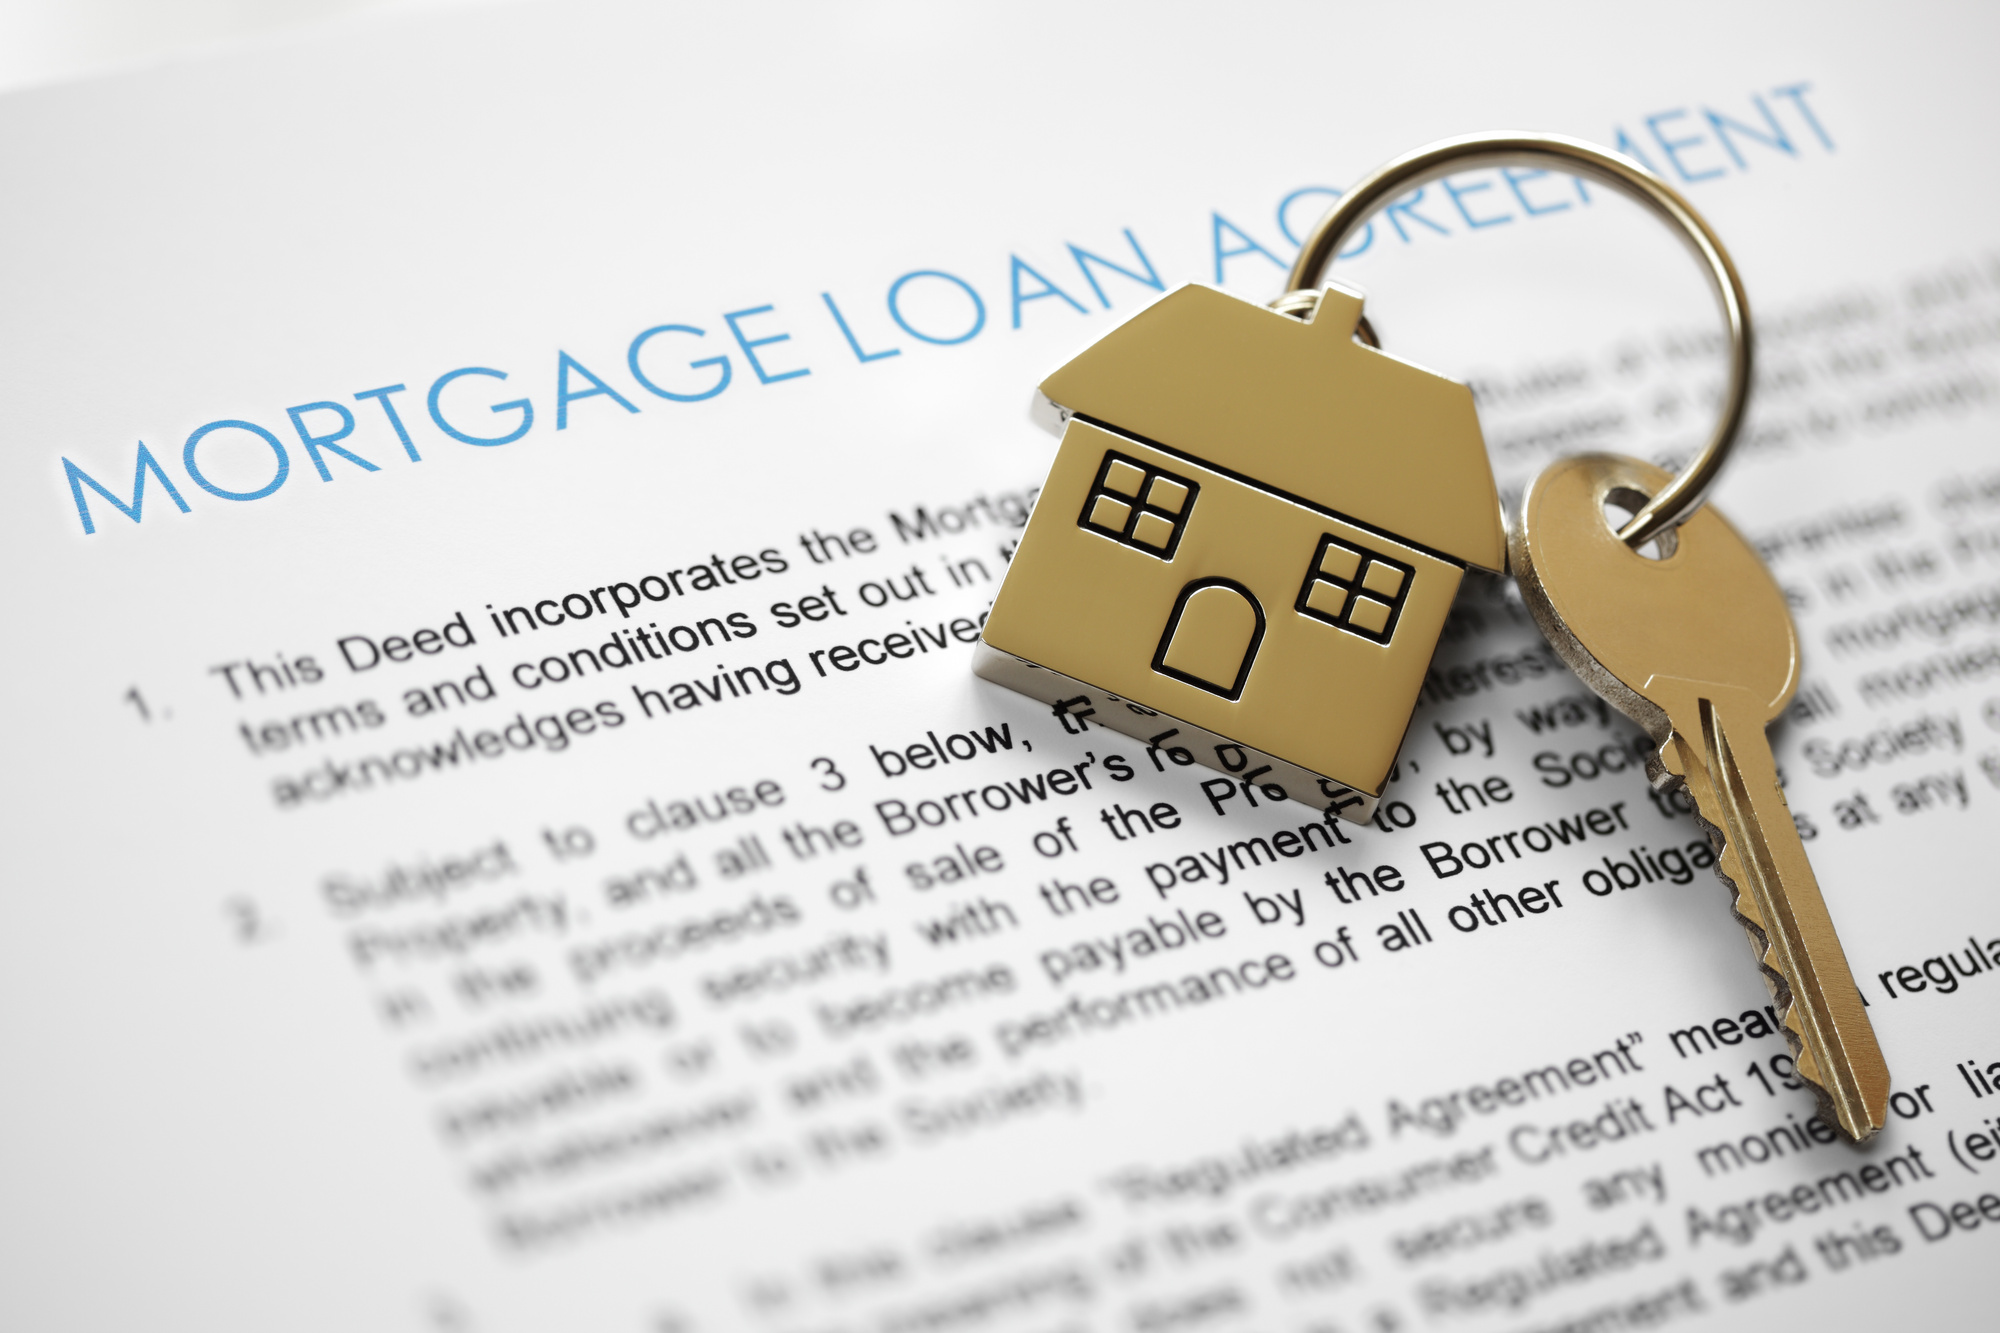 Mortgage Rates Are at a Record Low